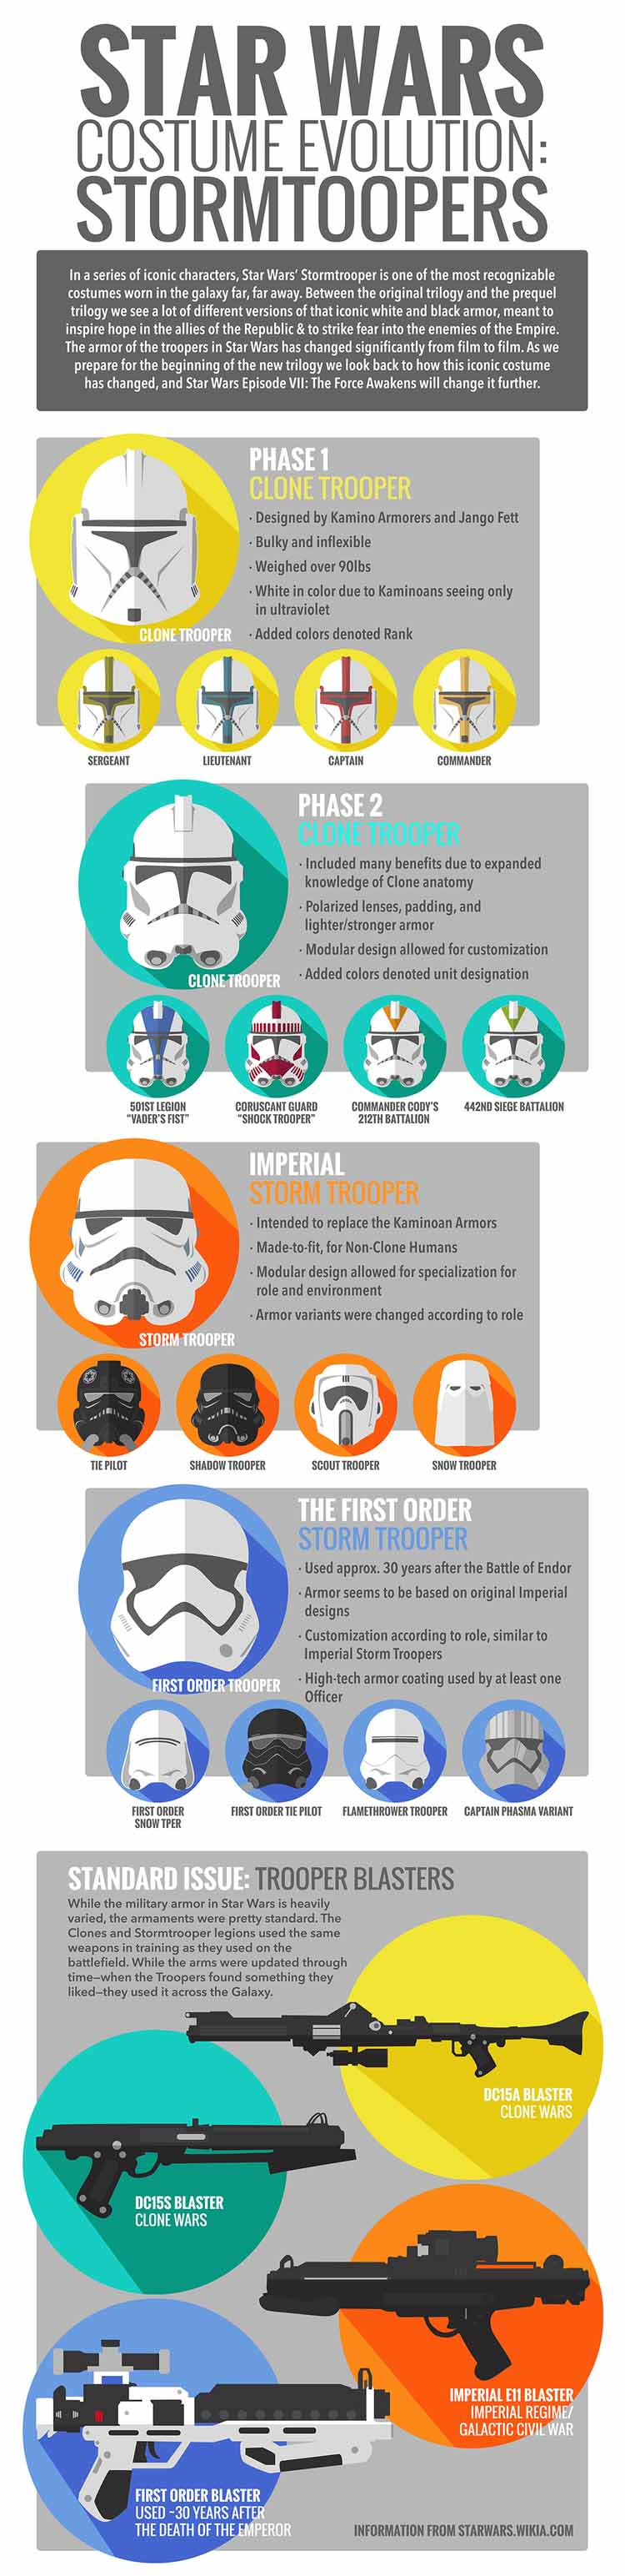 Stormtrooper Evolution